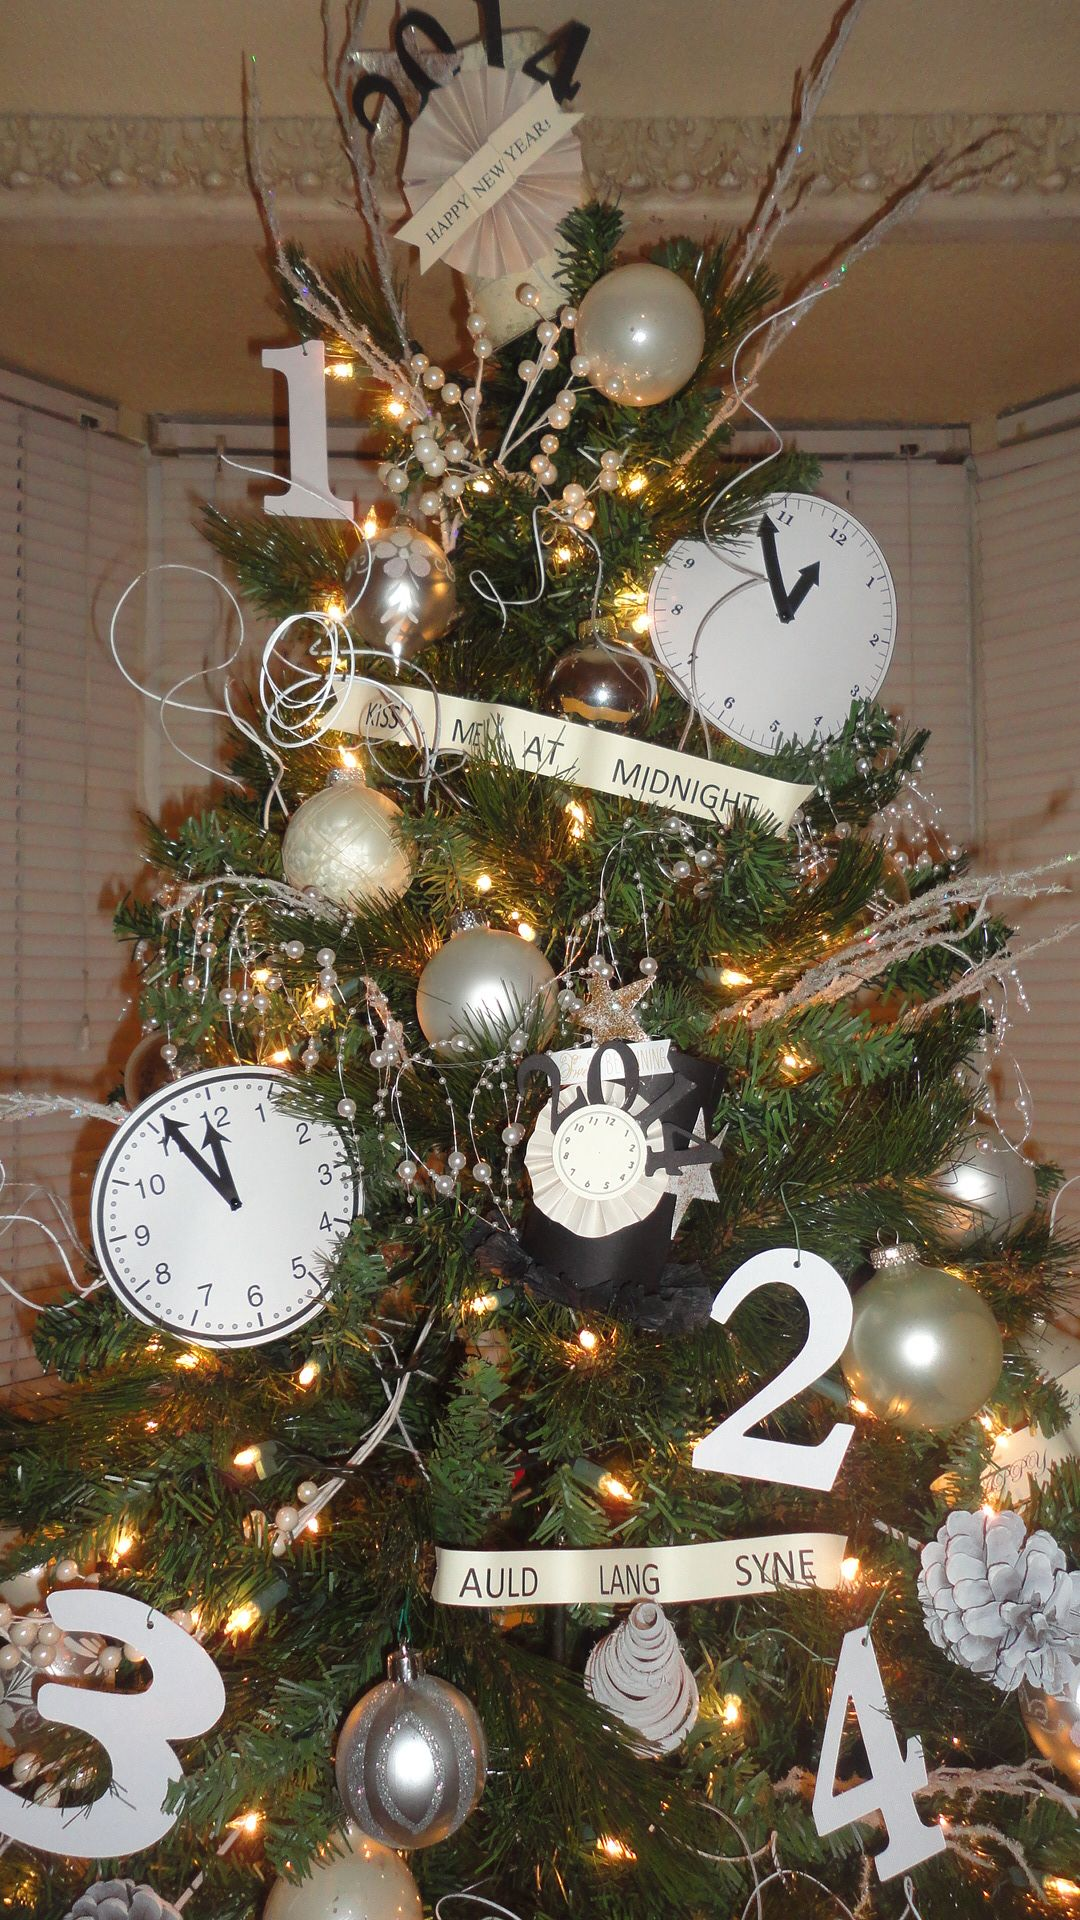 after christmas i turned my tree into a new years eve tree by adding clocks sayings count down num new years eve day new years eve decorations new years tree tree into a new years eve tree